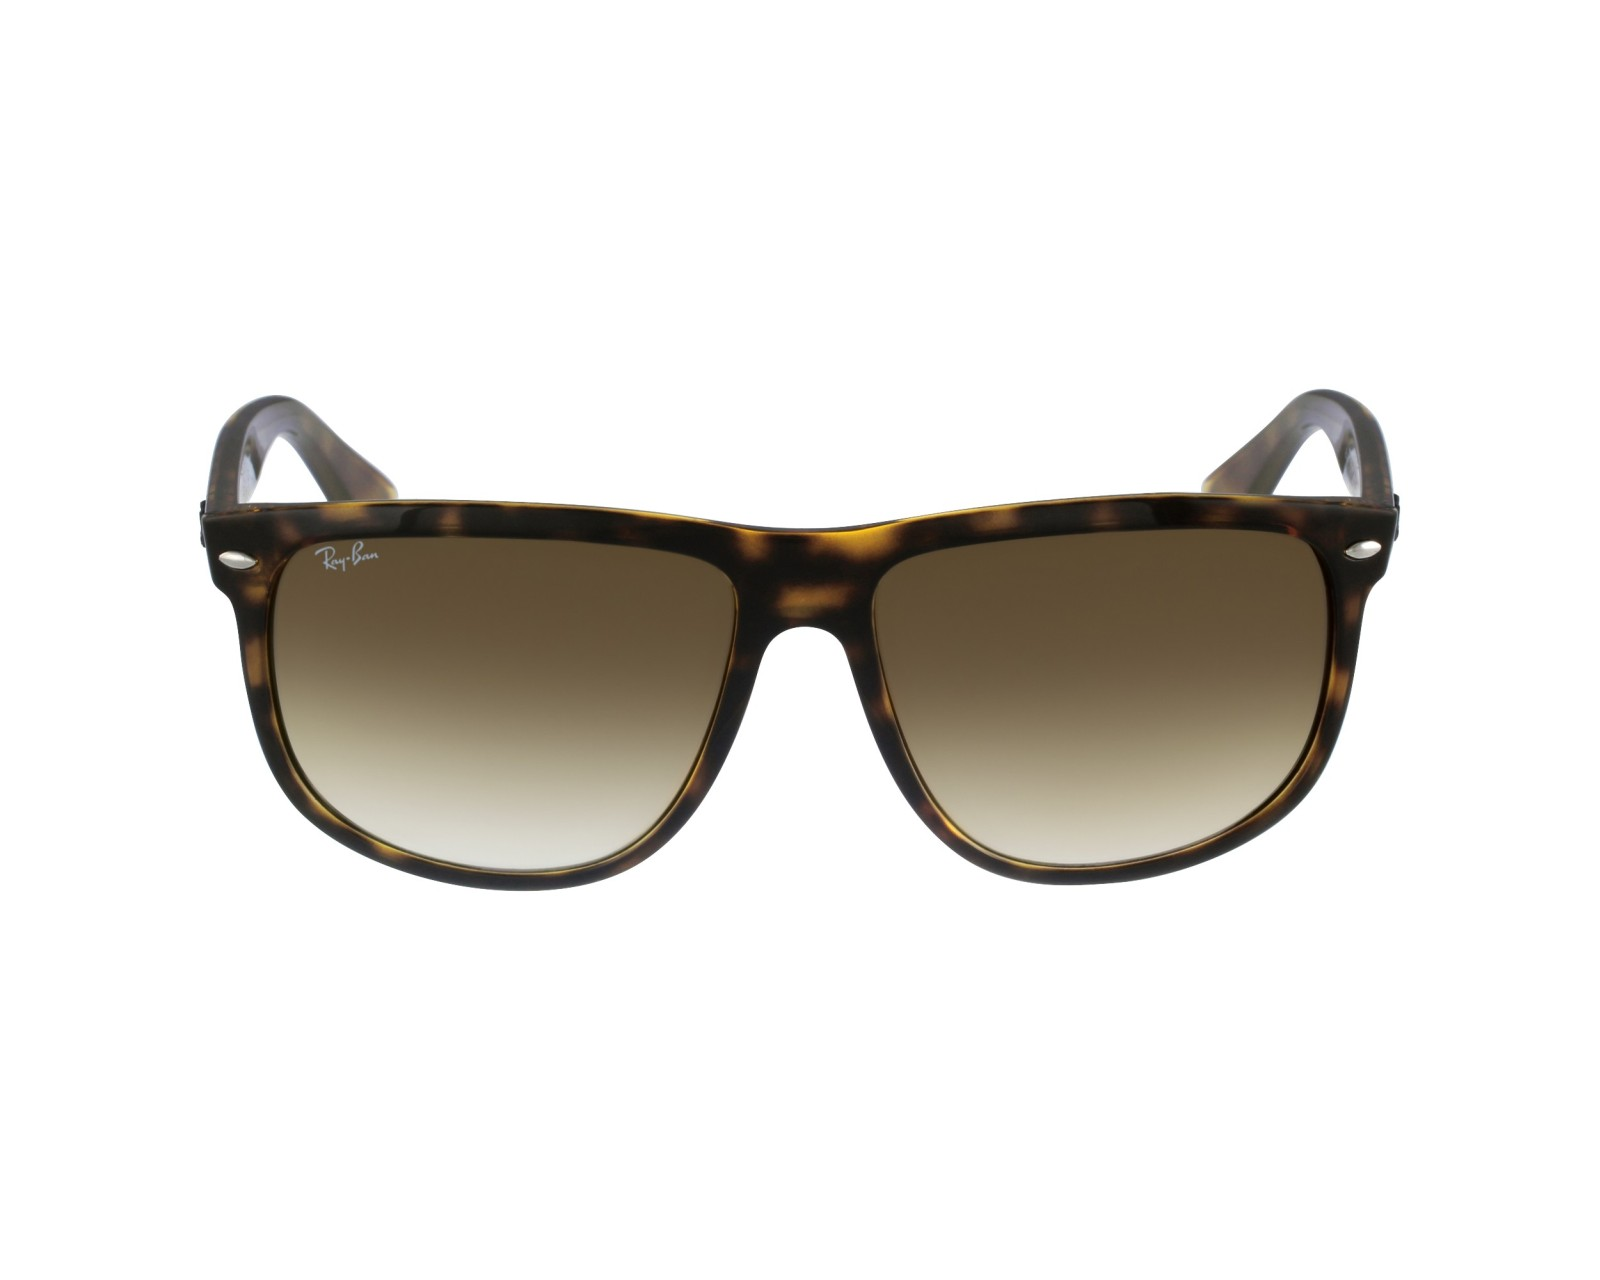 34e2d1dc9623 Sunglasses Ray-Ban RB-4147 710 51 60-15 Brown profile view